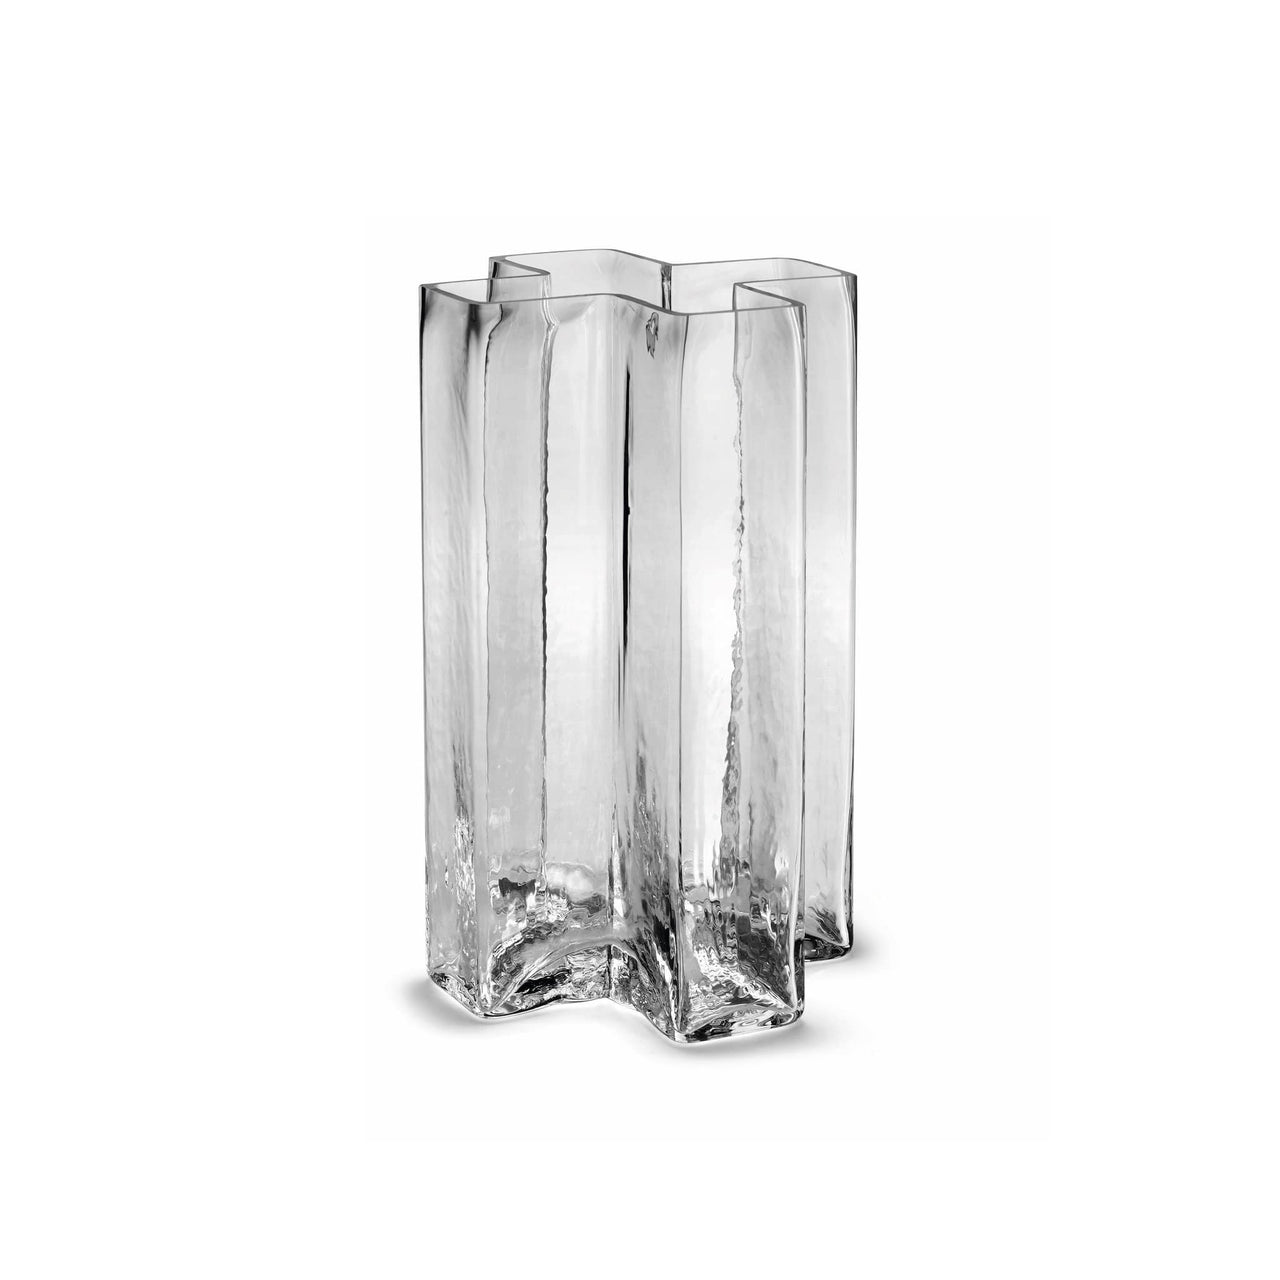 NORMODE Decor Holmegaard Crosses Vase, Clear, 7""